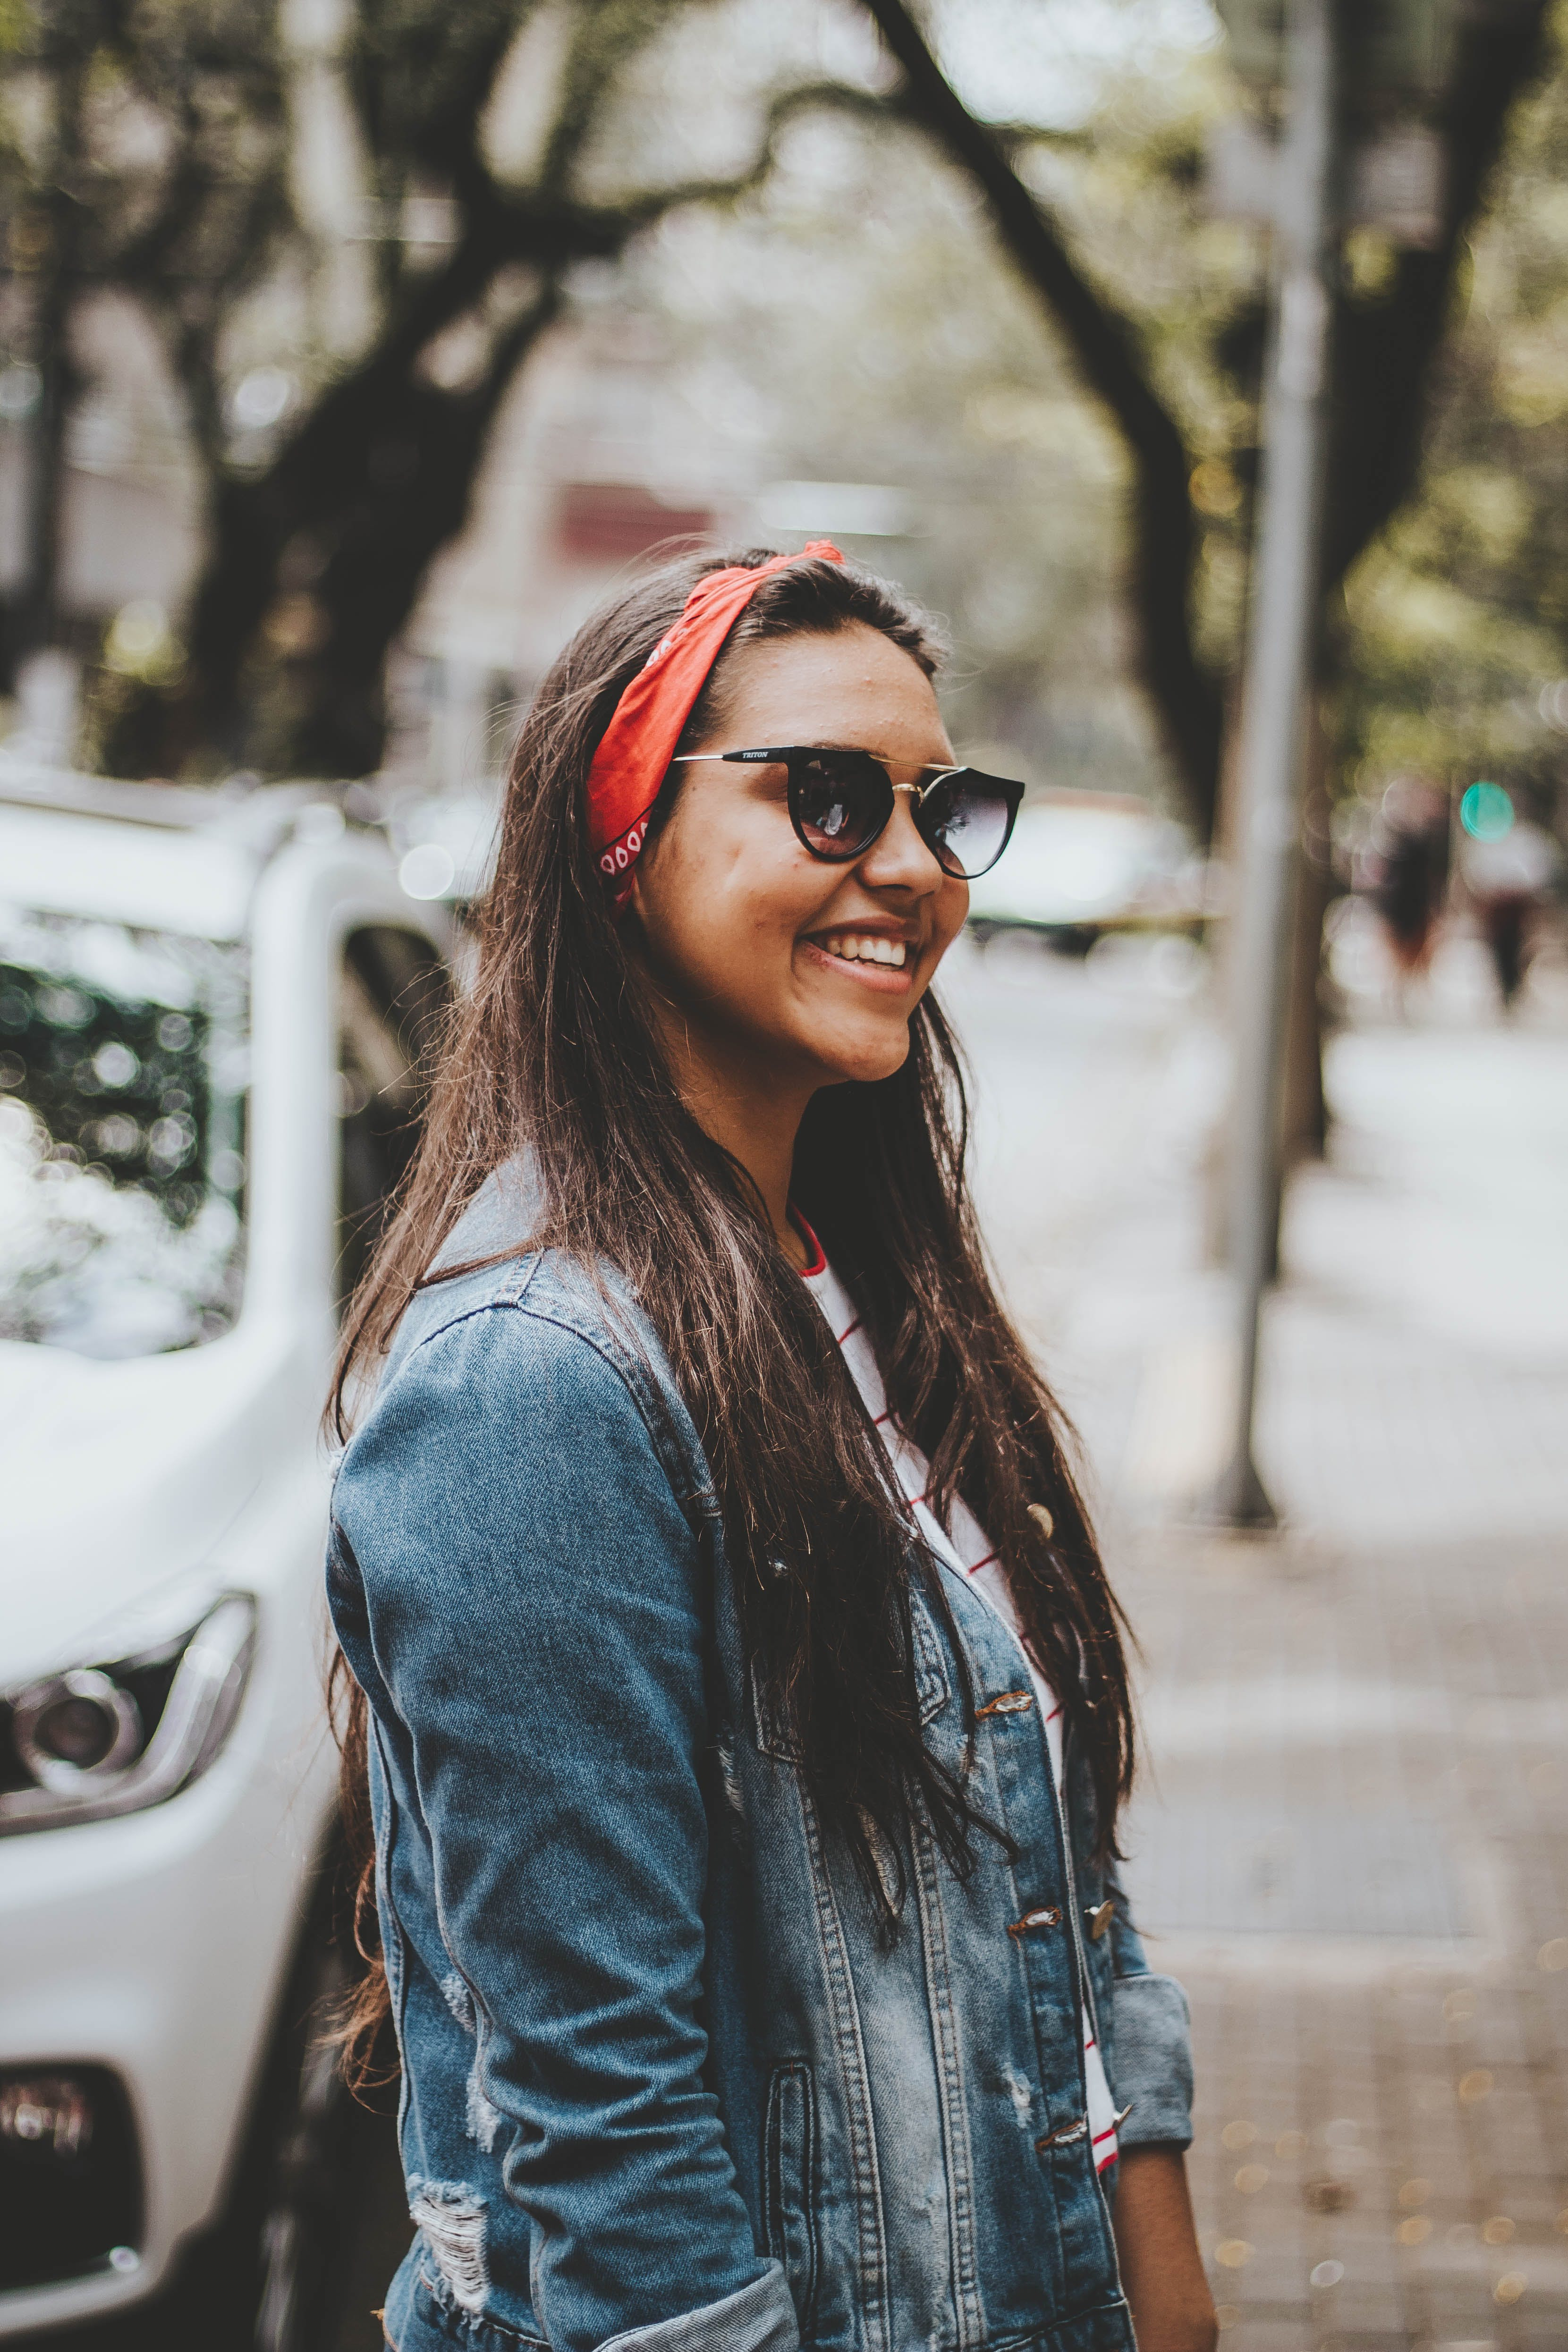 Woman Smiling Near White Suv Parked